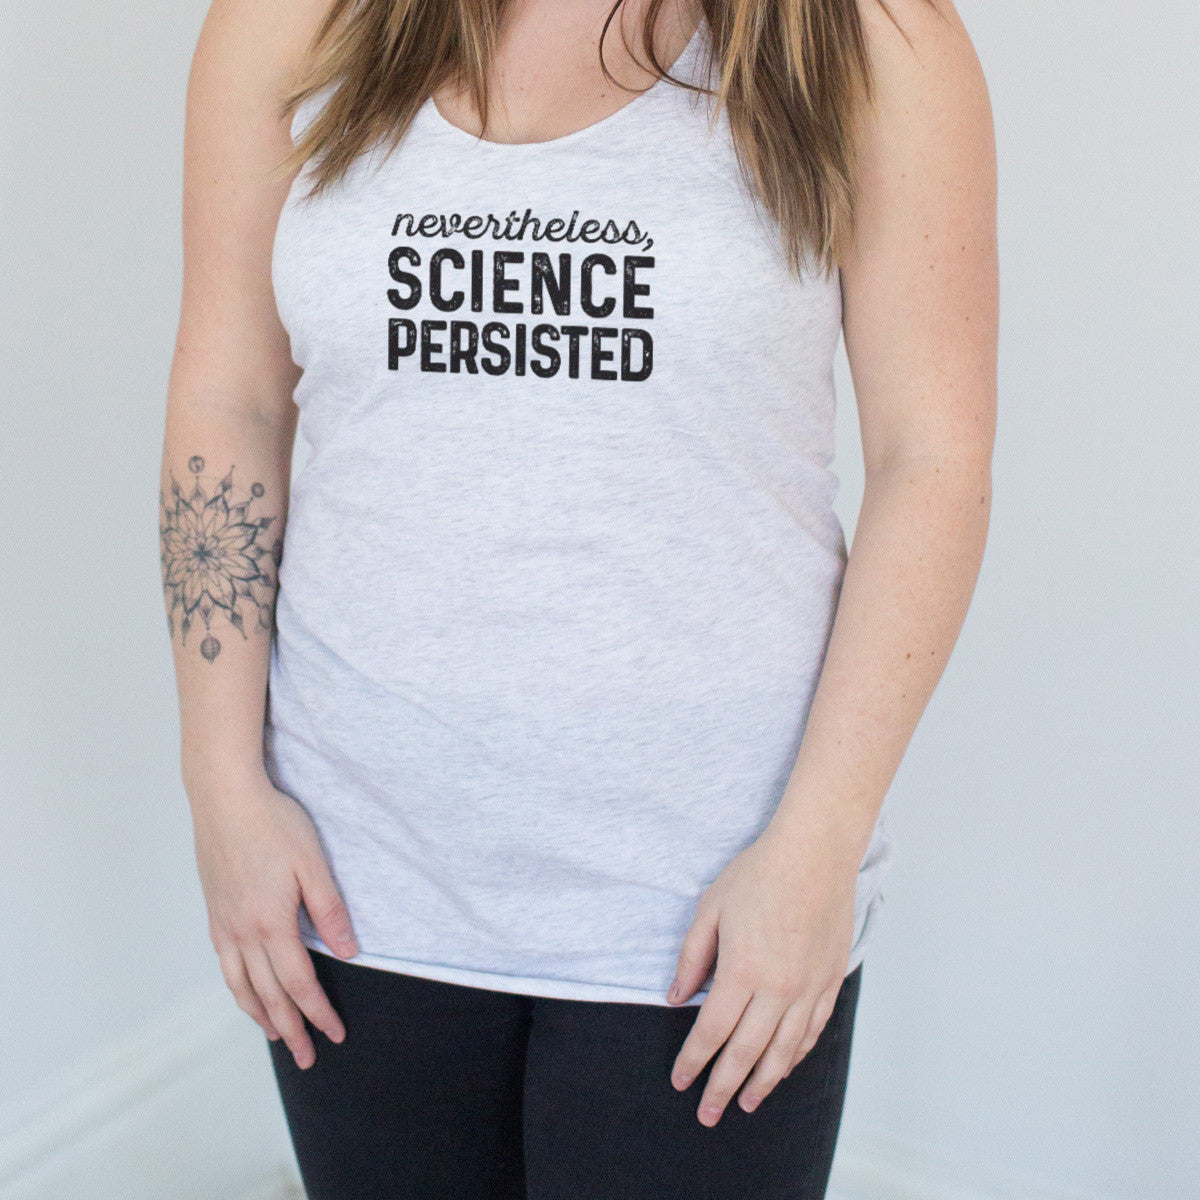 Nevertheless, Science Persisted Racerback Tank